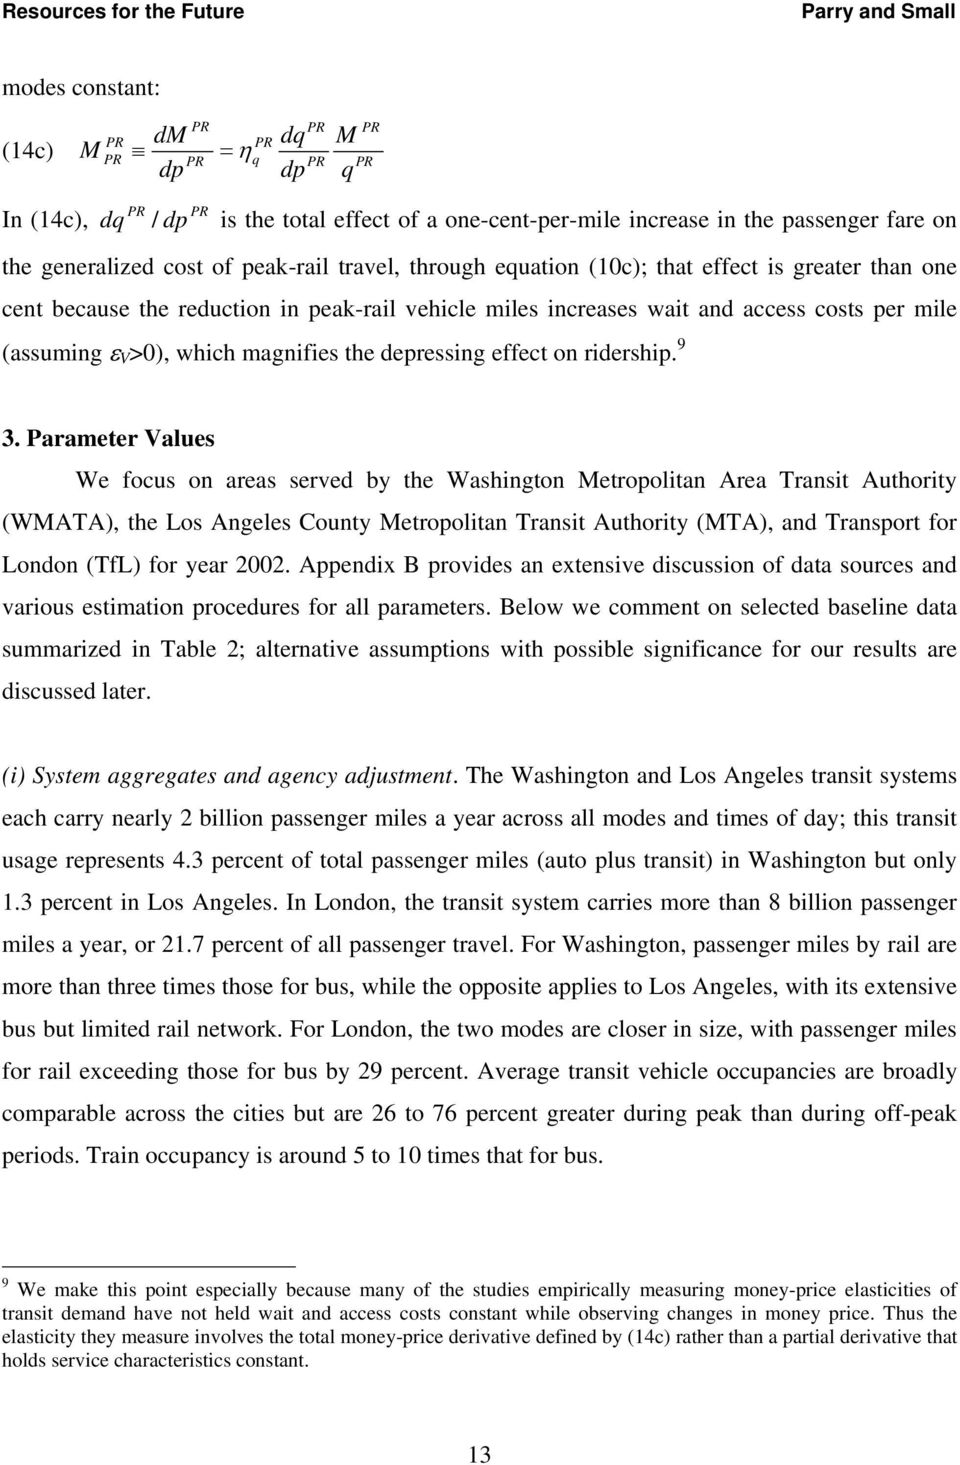 Parameter alues We focus on areas served by the Washngton etropoltan Area Transt Authorty (WATA), the Los Angeles County etropoltan Transt Authorty (TA), and Transport for London (TfL) for year 2002.